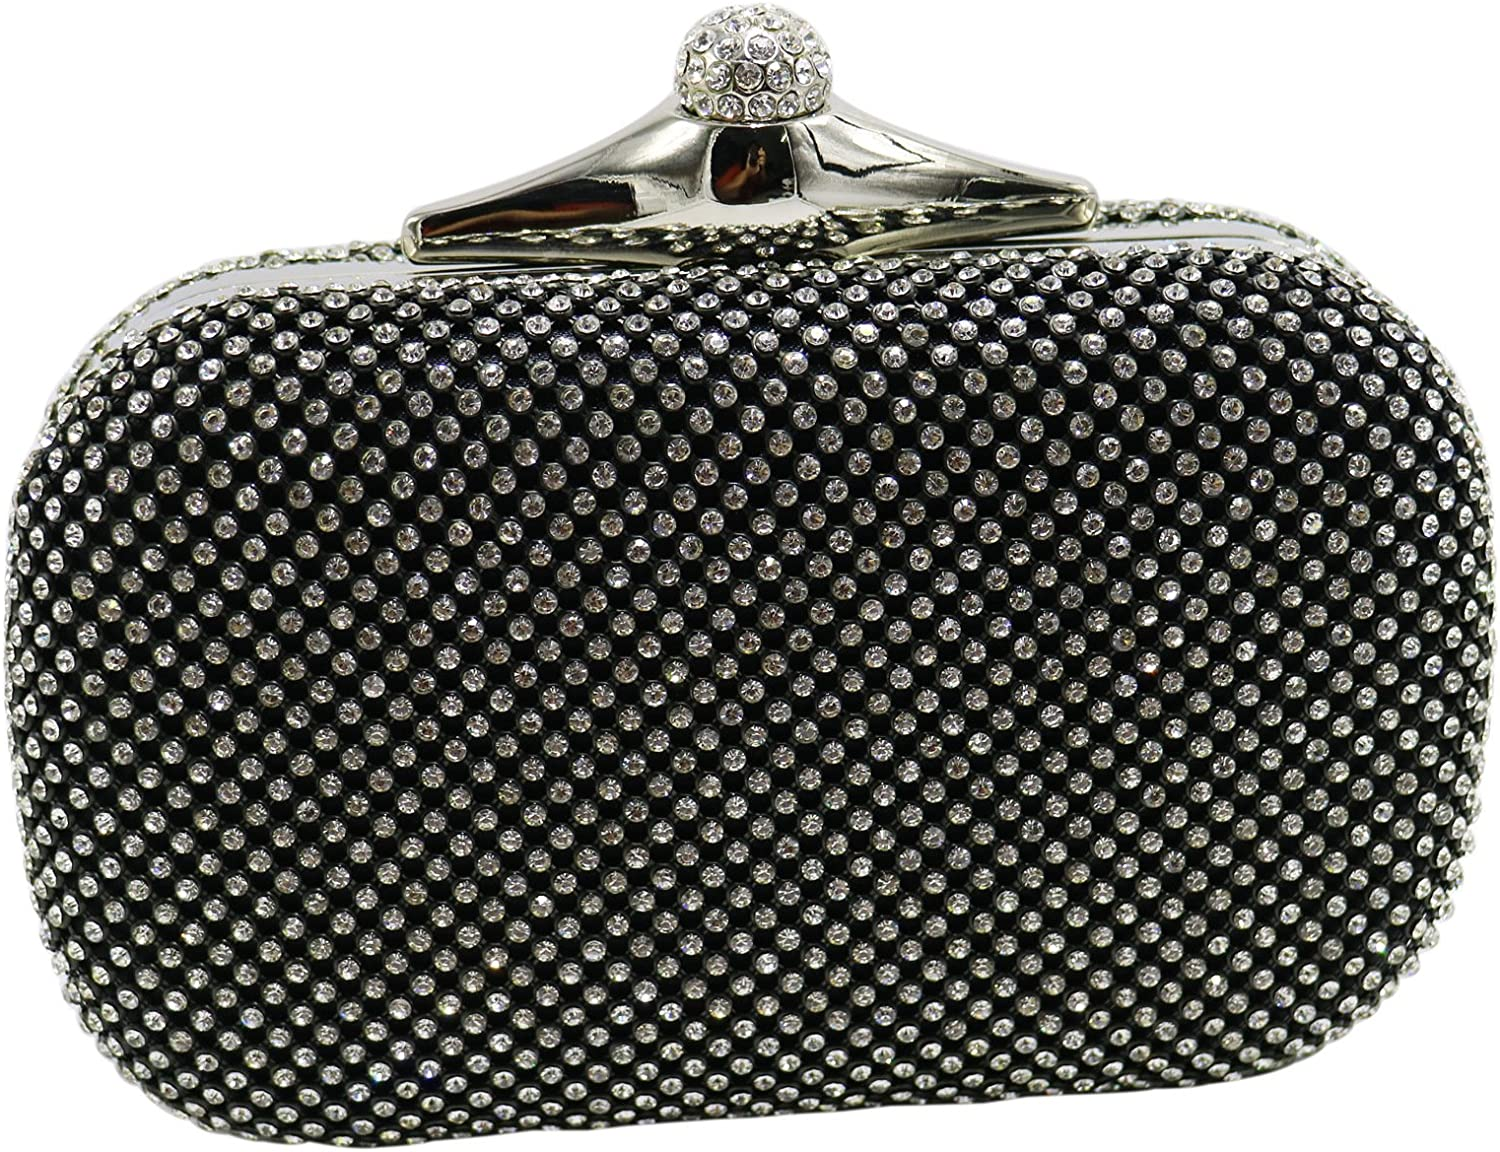 DMIX Crystal Clutches and Evening Bag